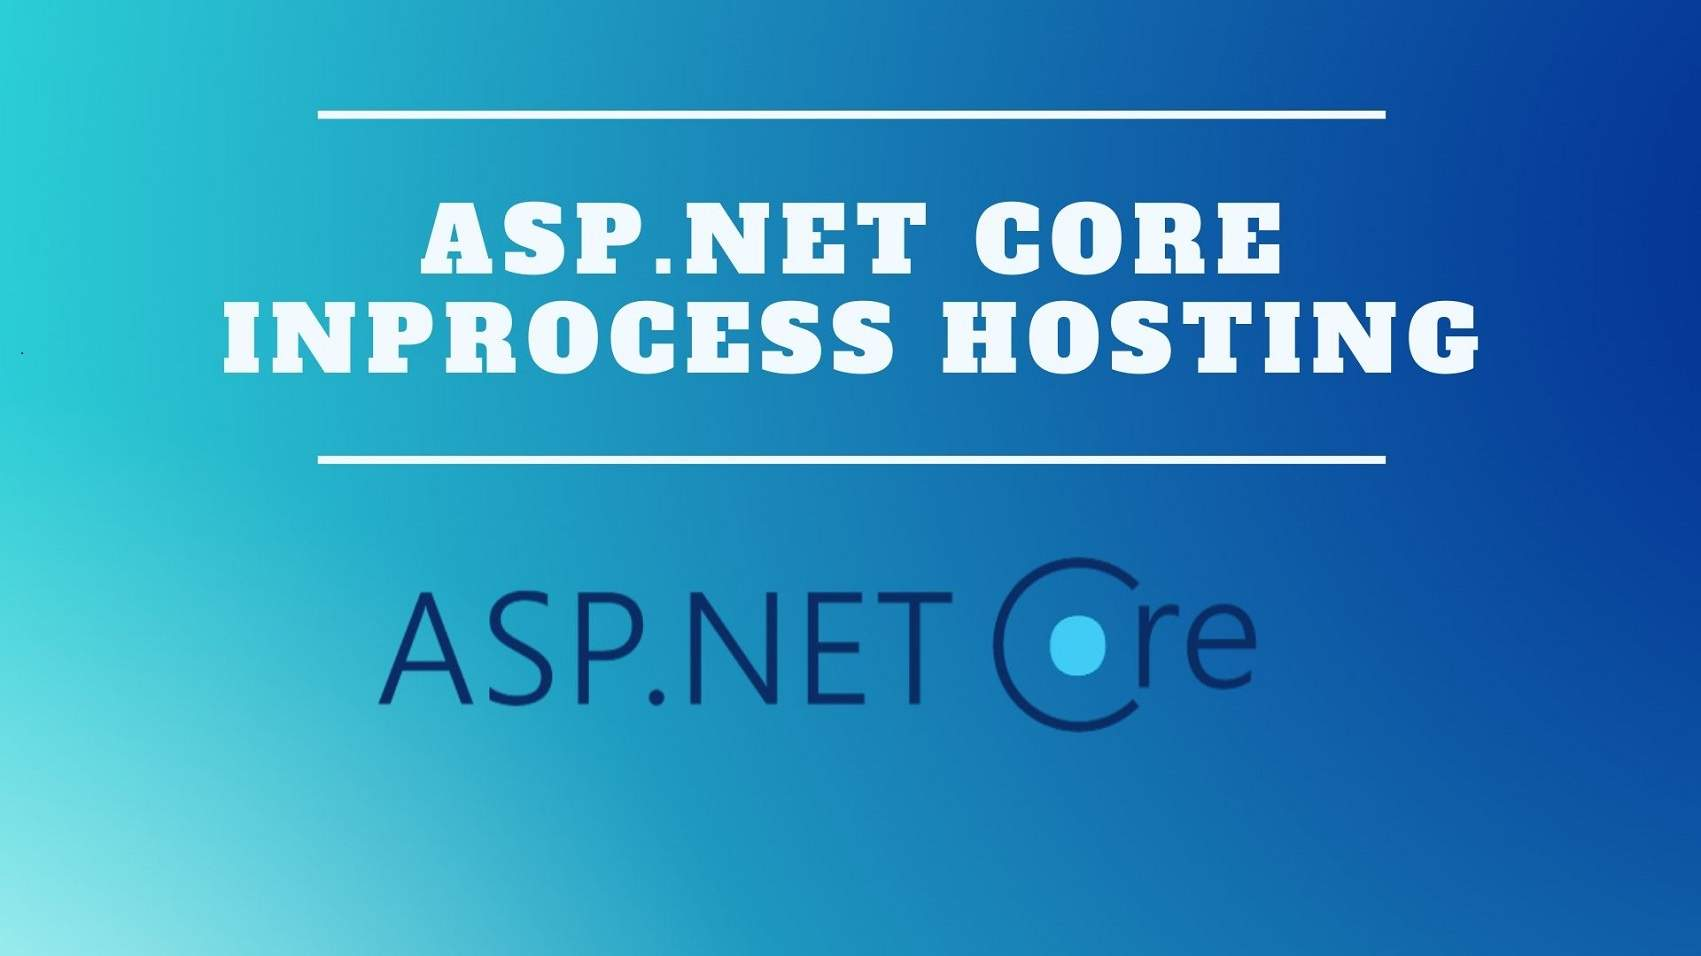 ASP.NET Core InProcess Hosting